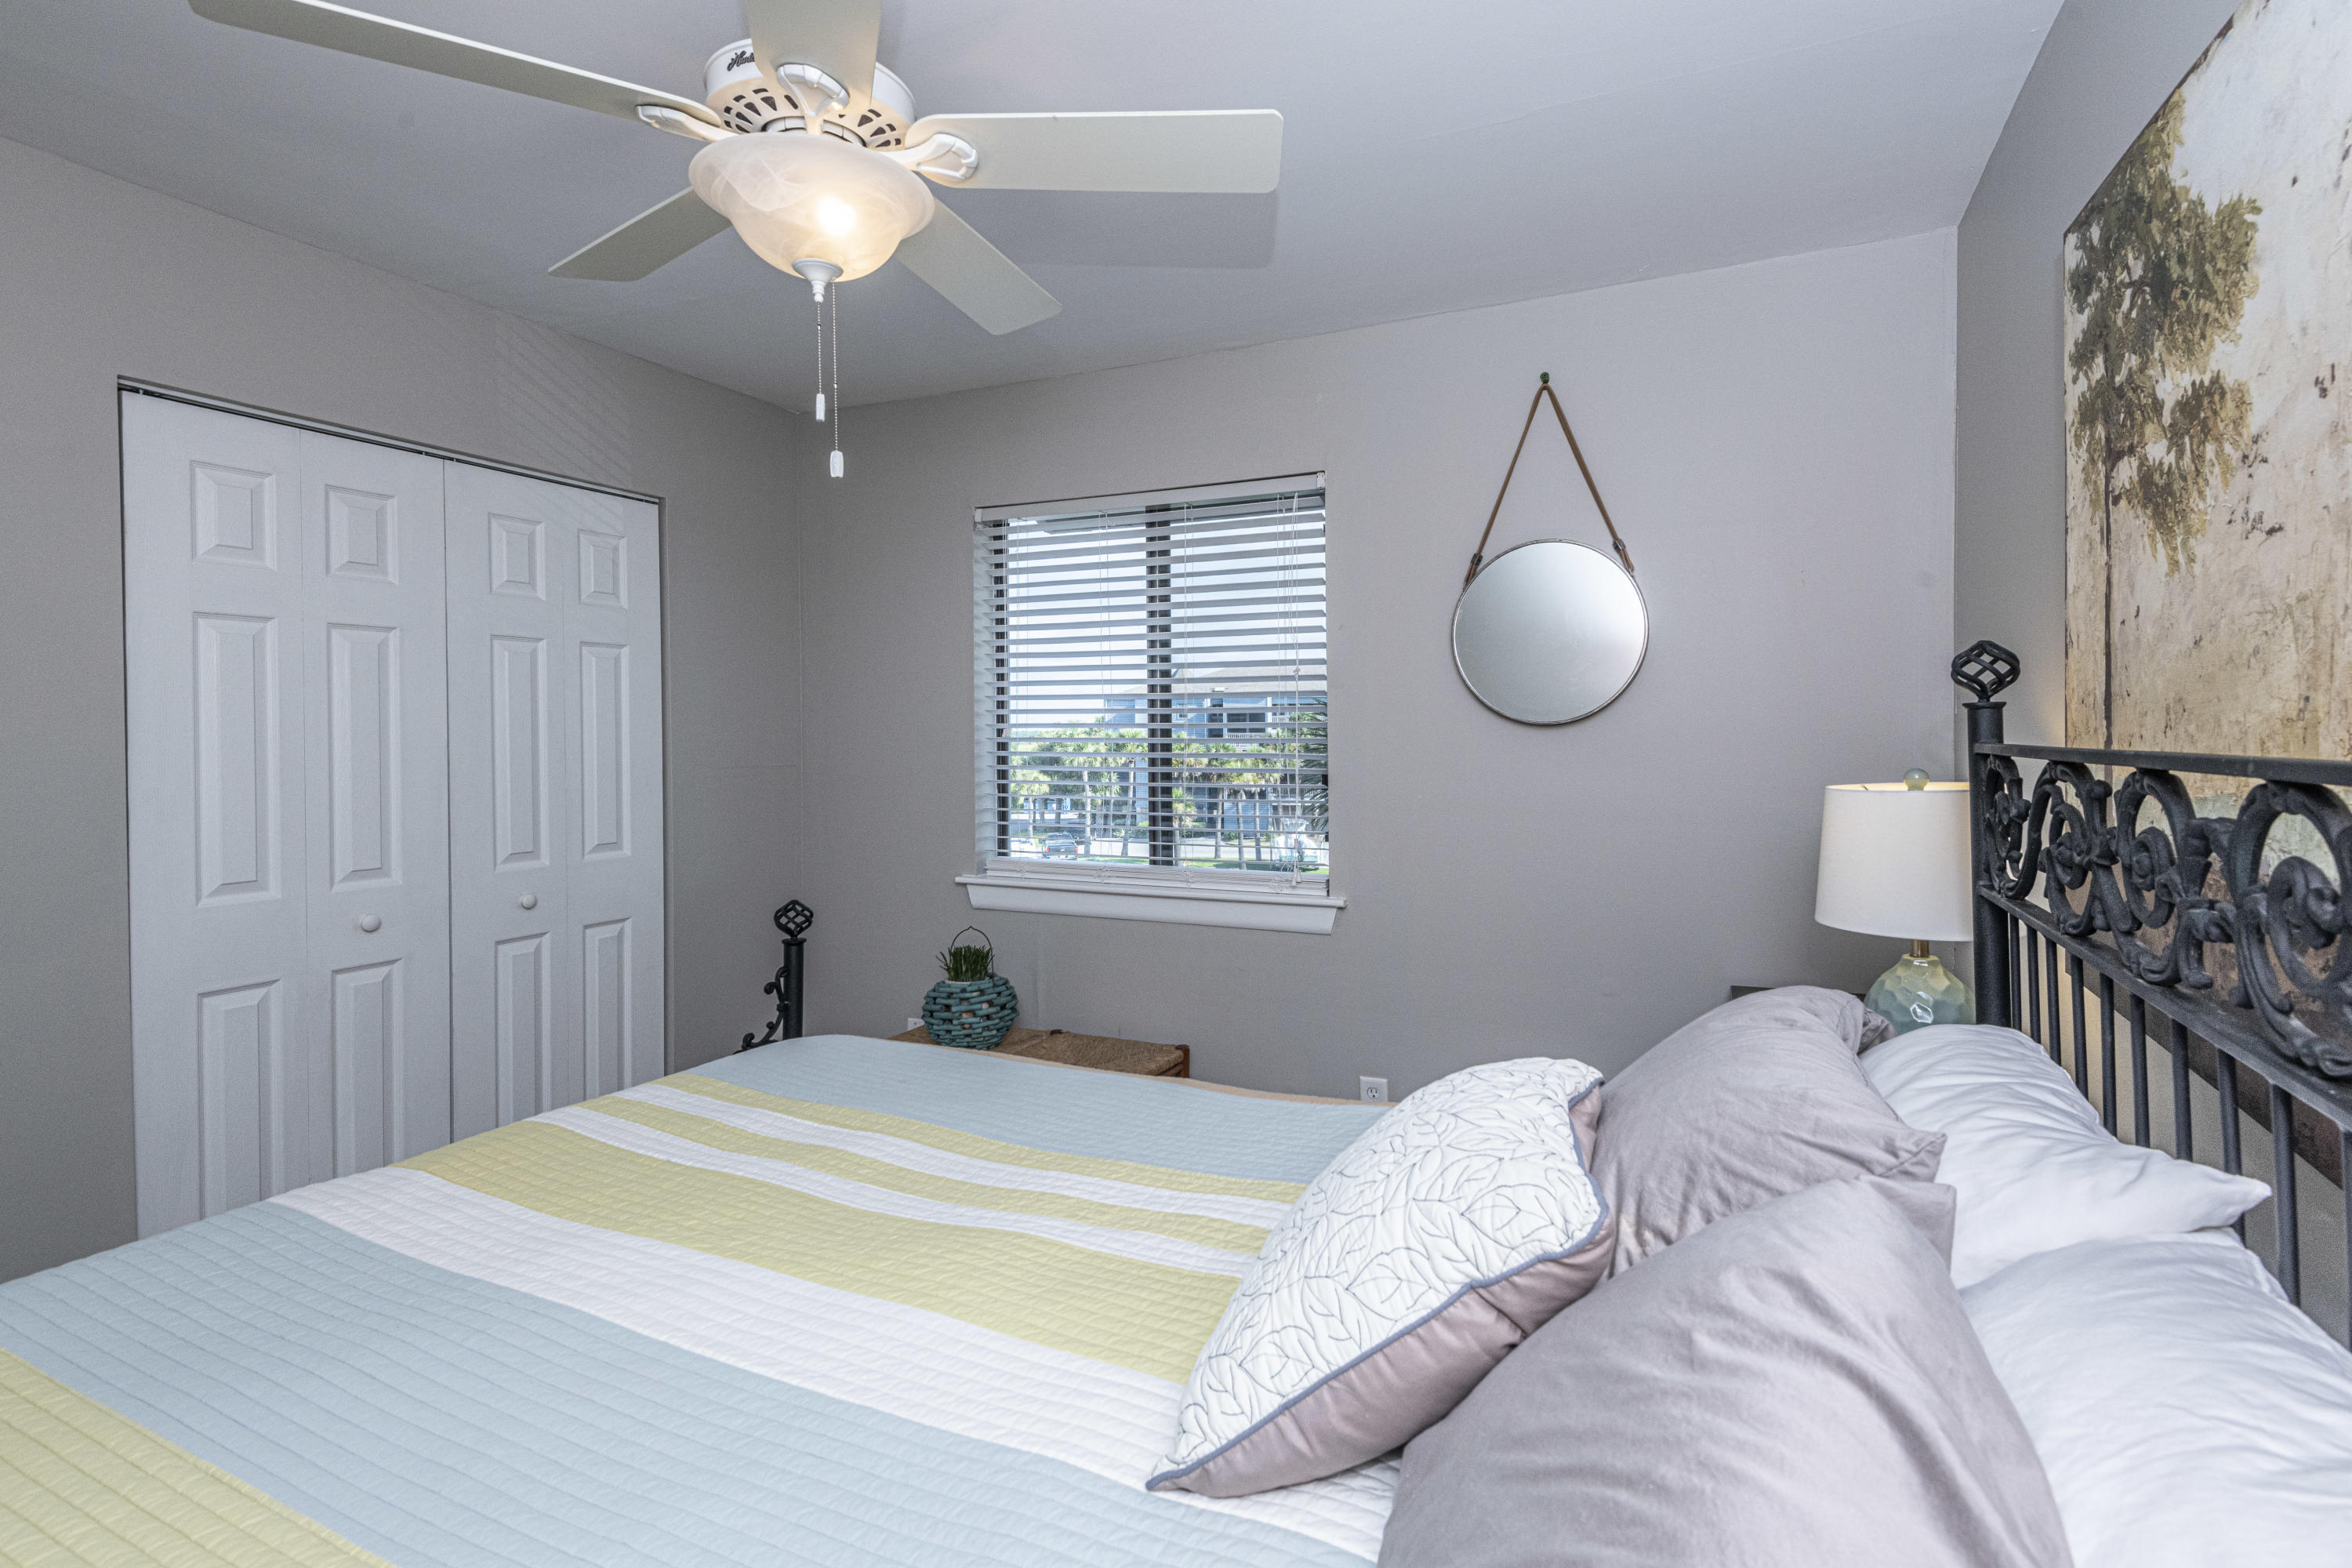 Mariners Cay Homes For Sale - 71 Mariners Cay, Folly Beach, SC - 32